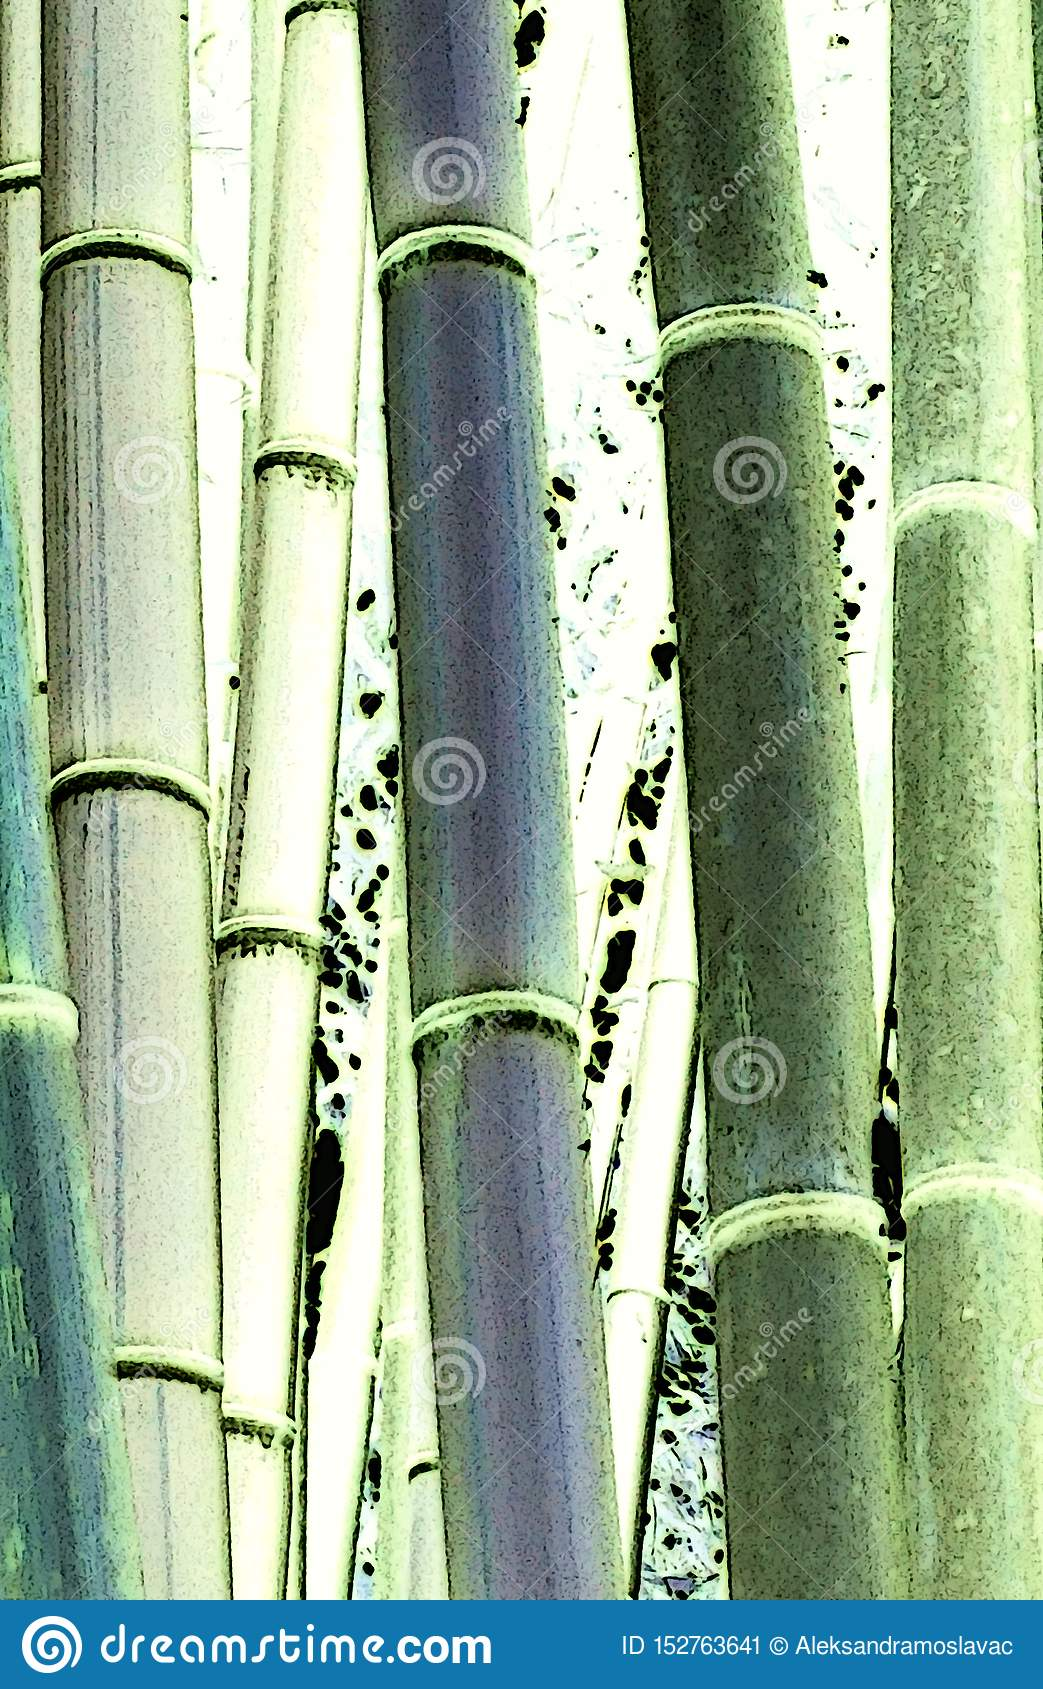 Illustrated Detail Of Bamboo Trees In Various Green Colors In The